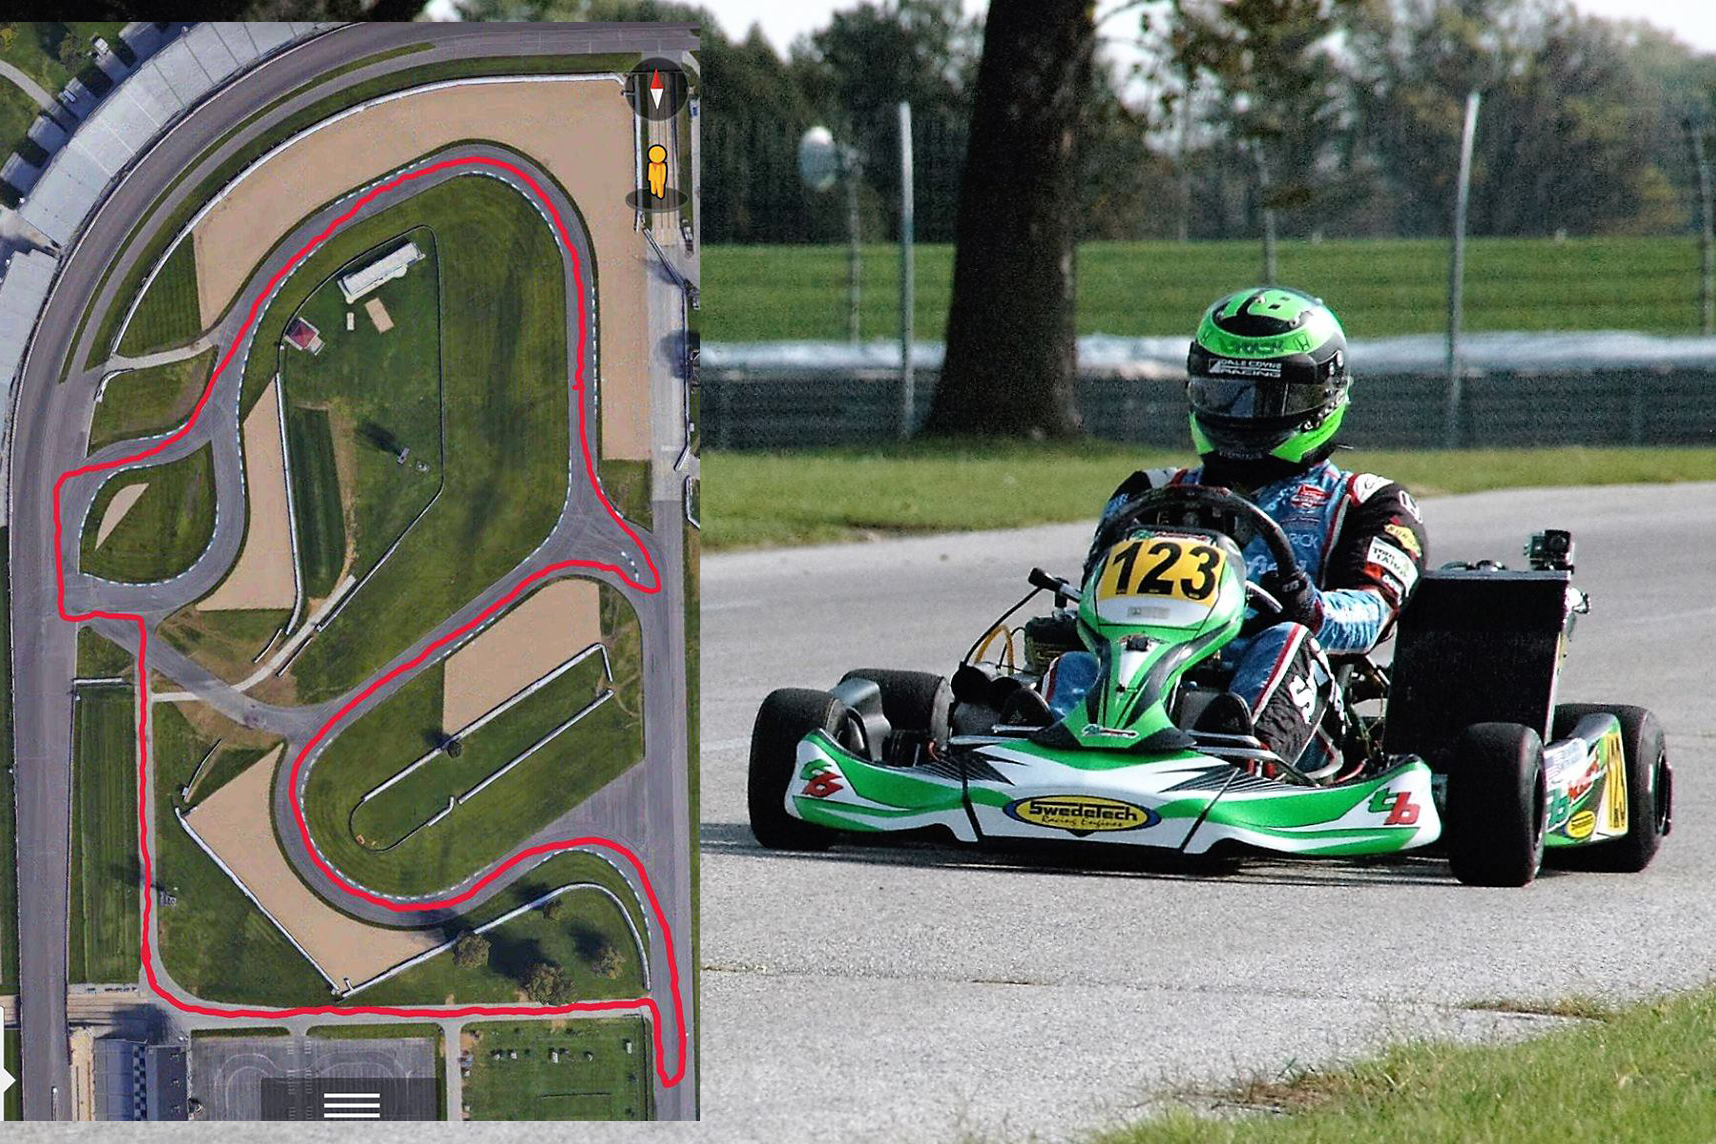 Kart race in planning stages for indianapolis motor for Indianapolis motor speedway indianapolis in